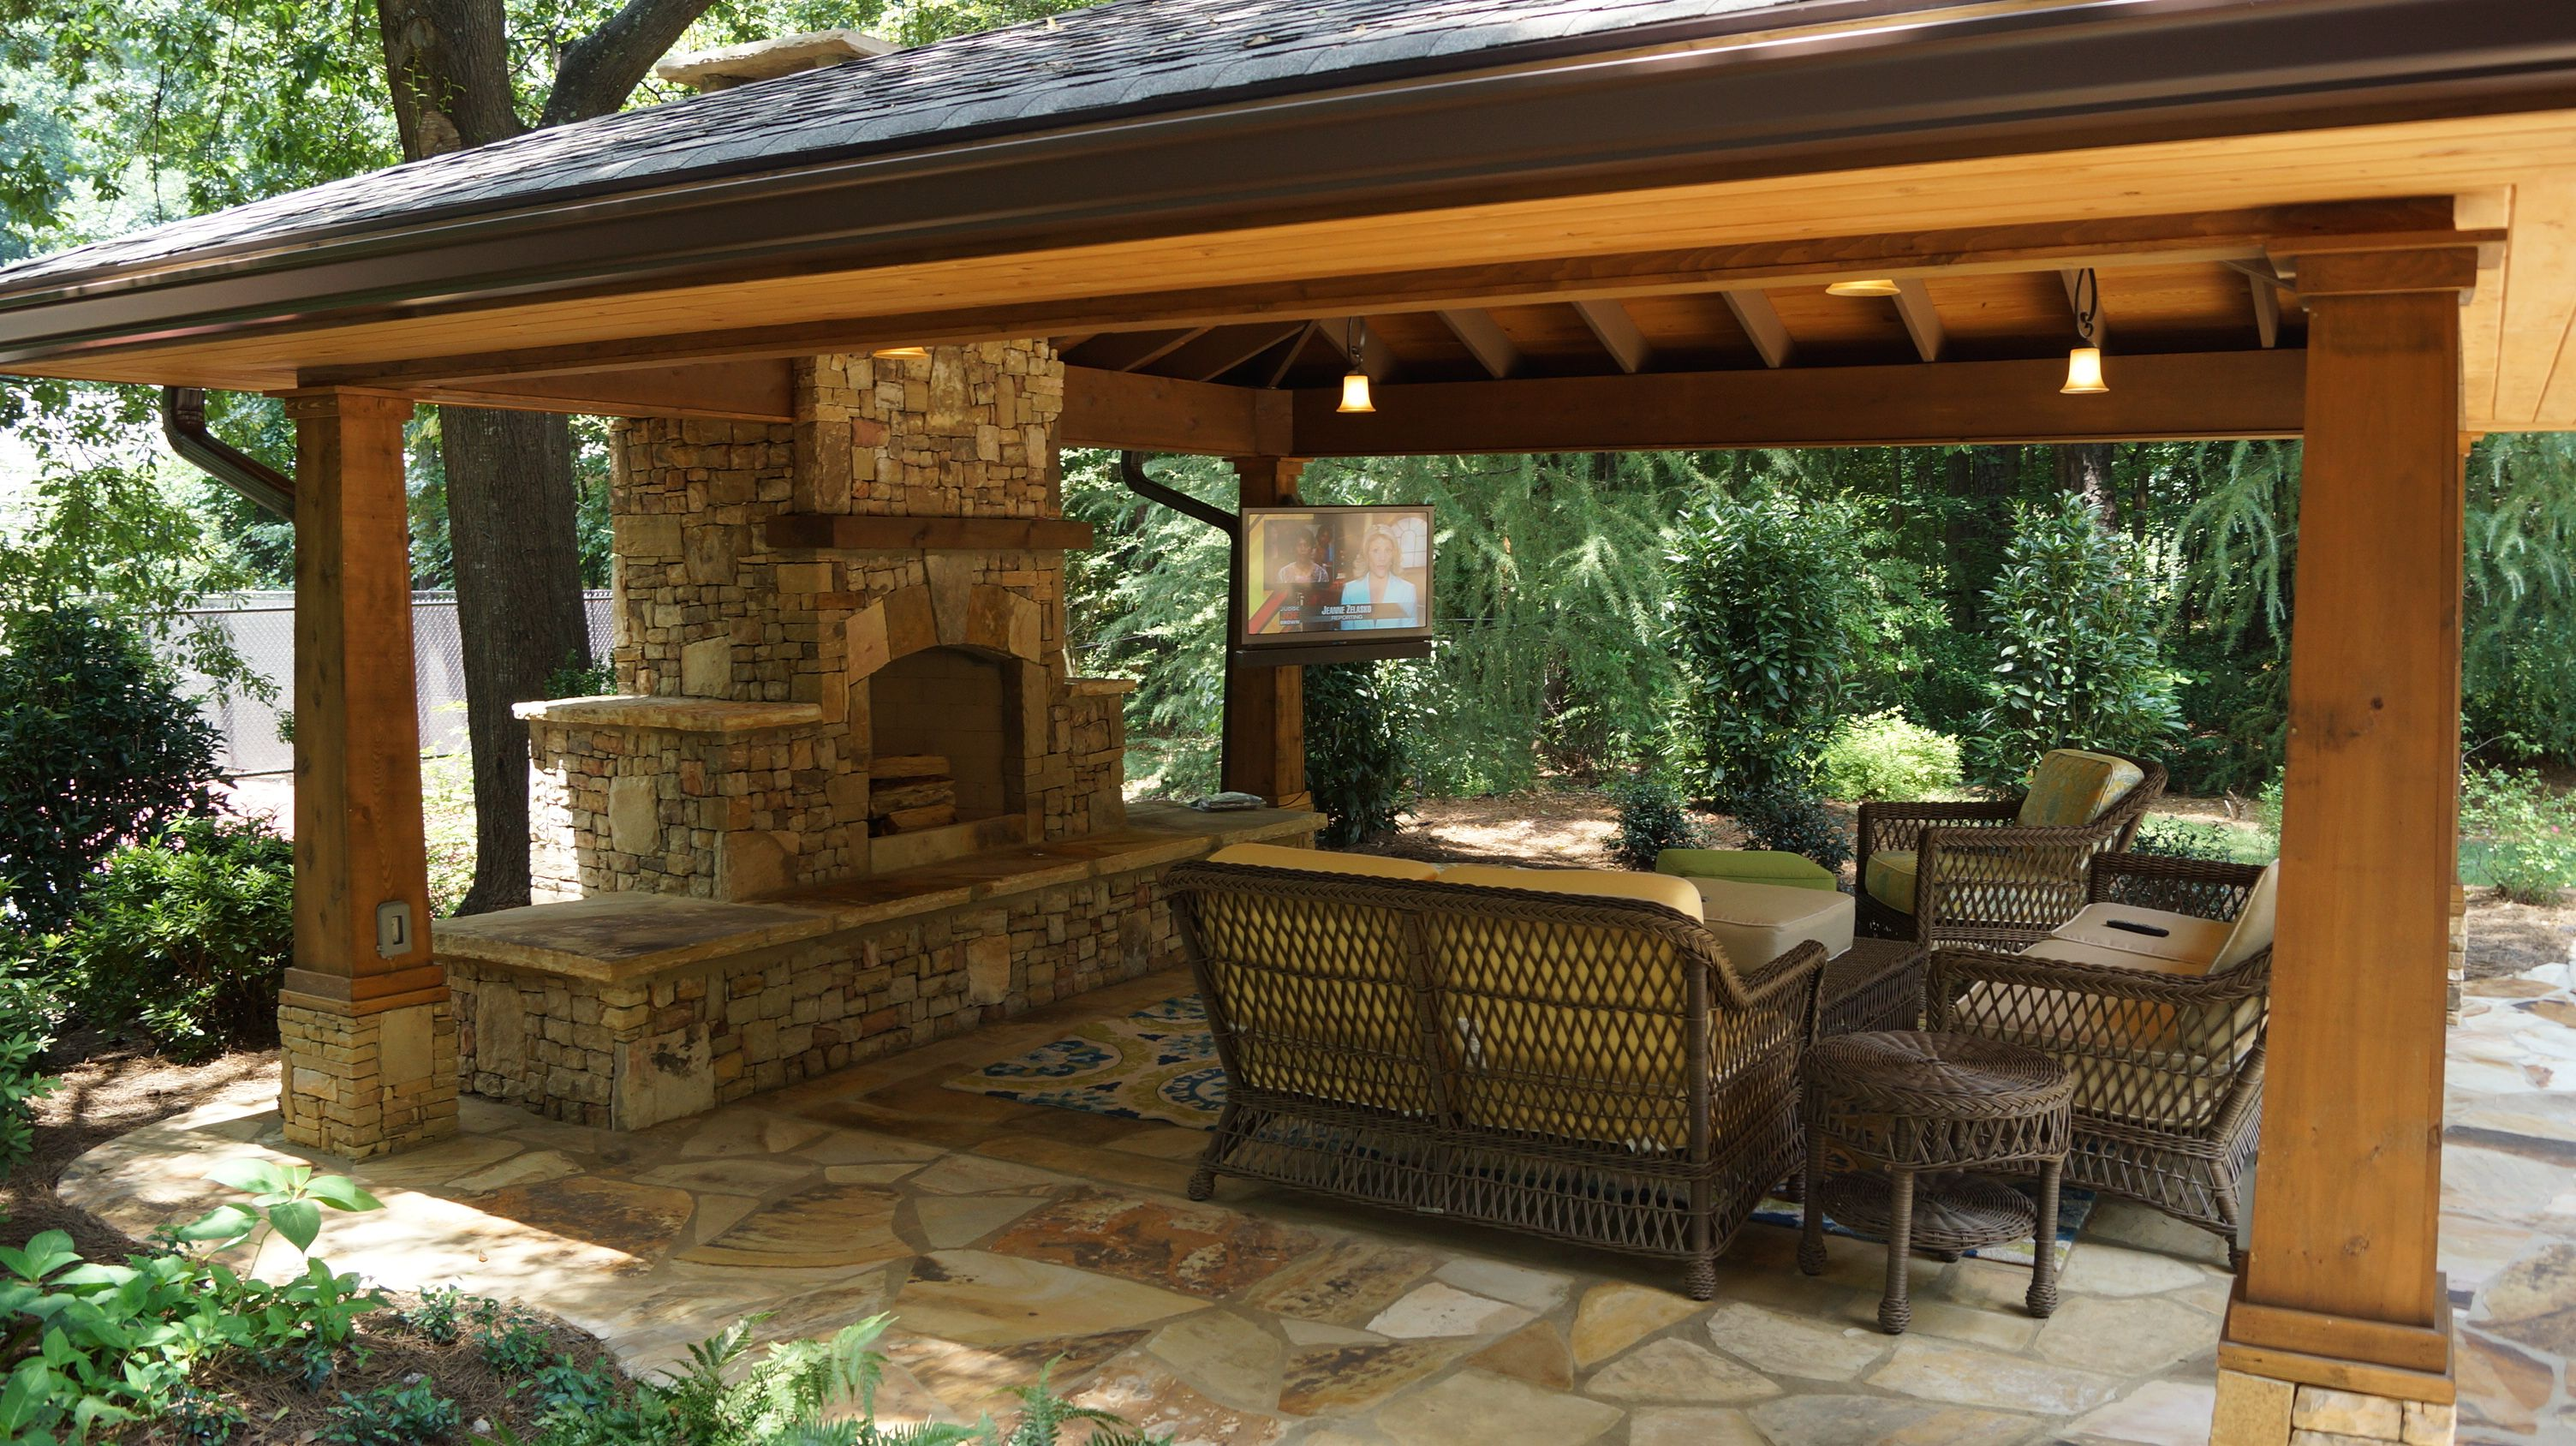 ordinary Gazebo as a Living Room amazing pictures